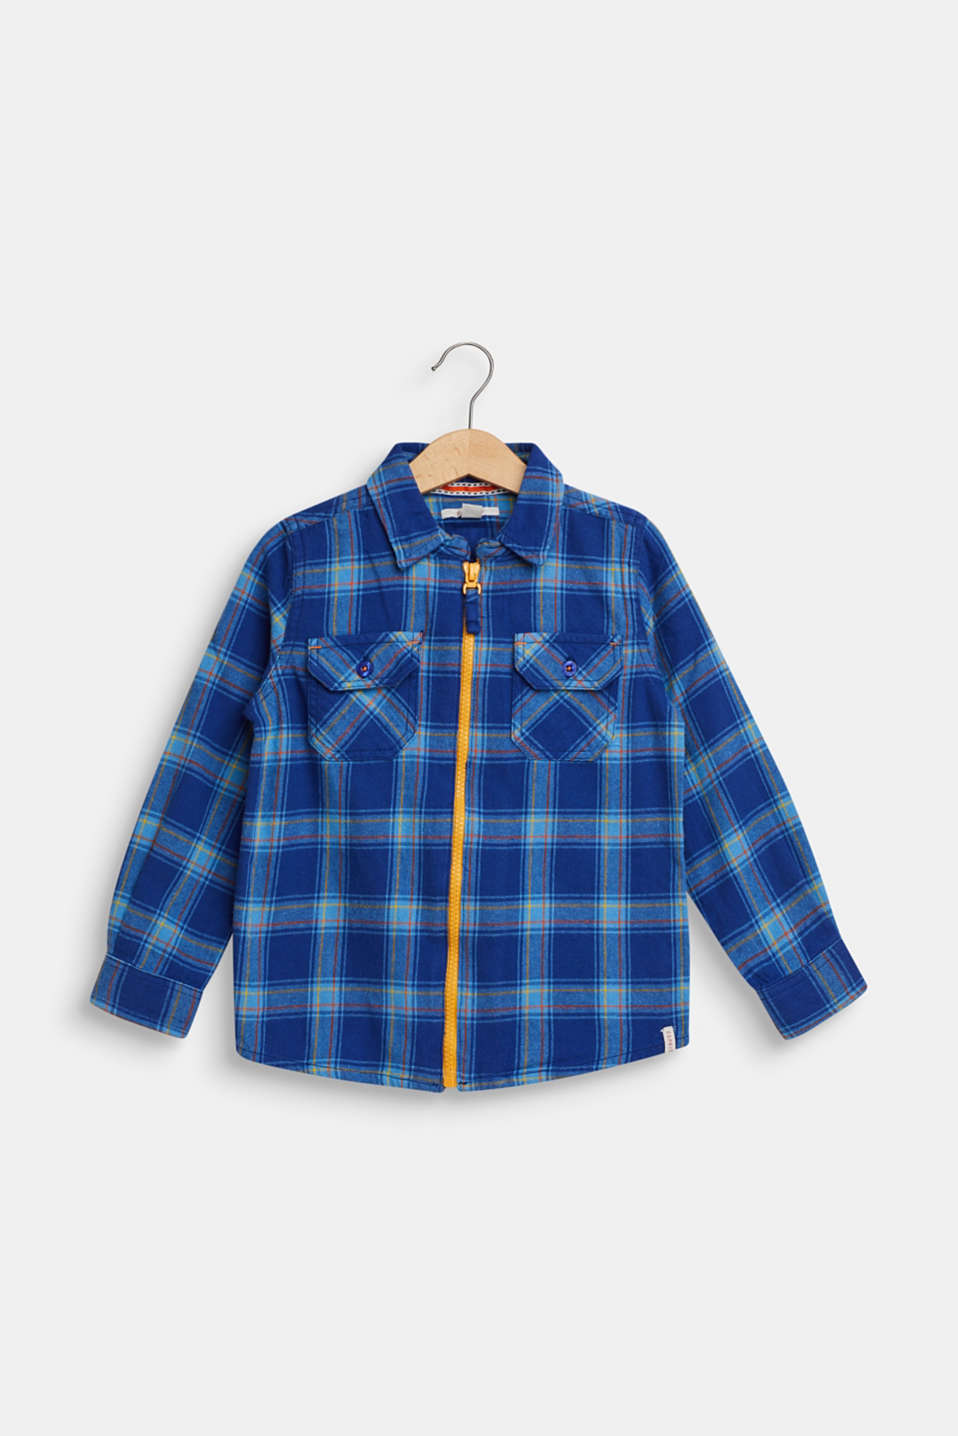 Checked flannel shirt, 100% cotton, indigo, detail image number 0